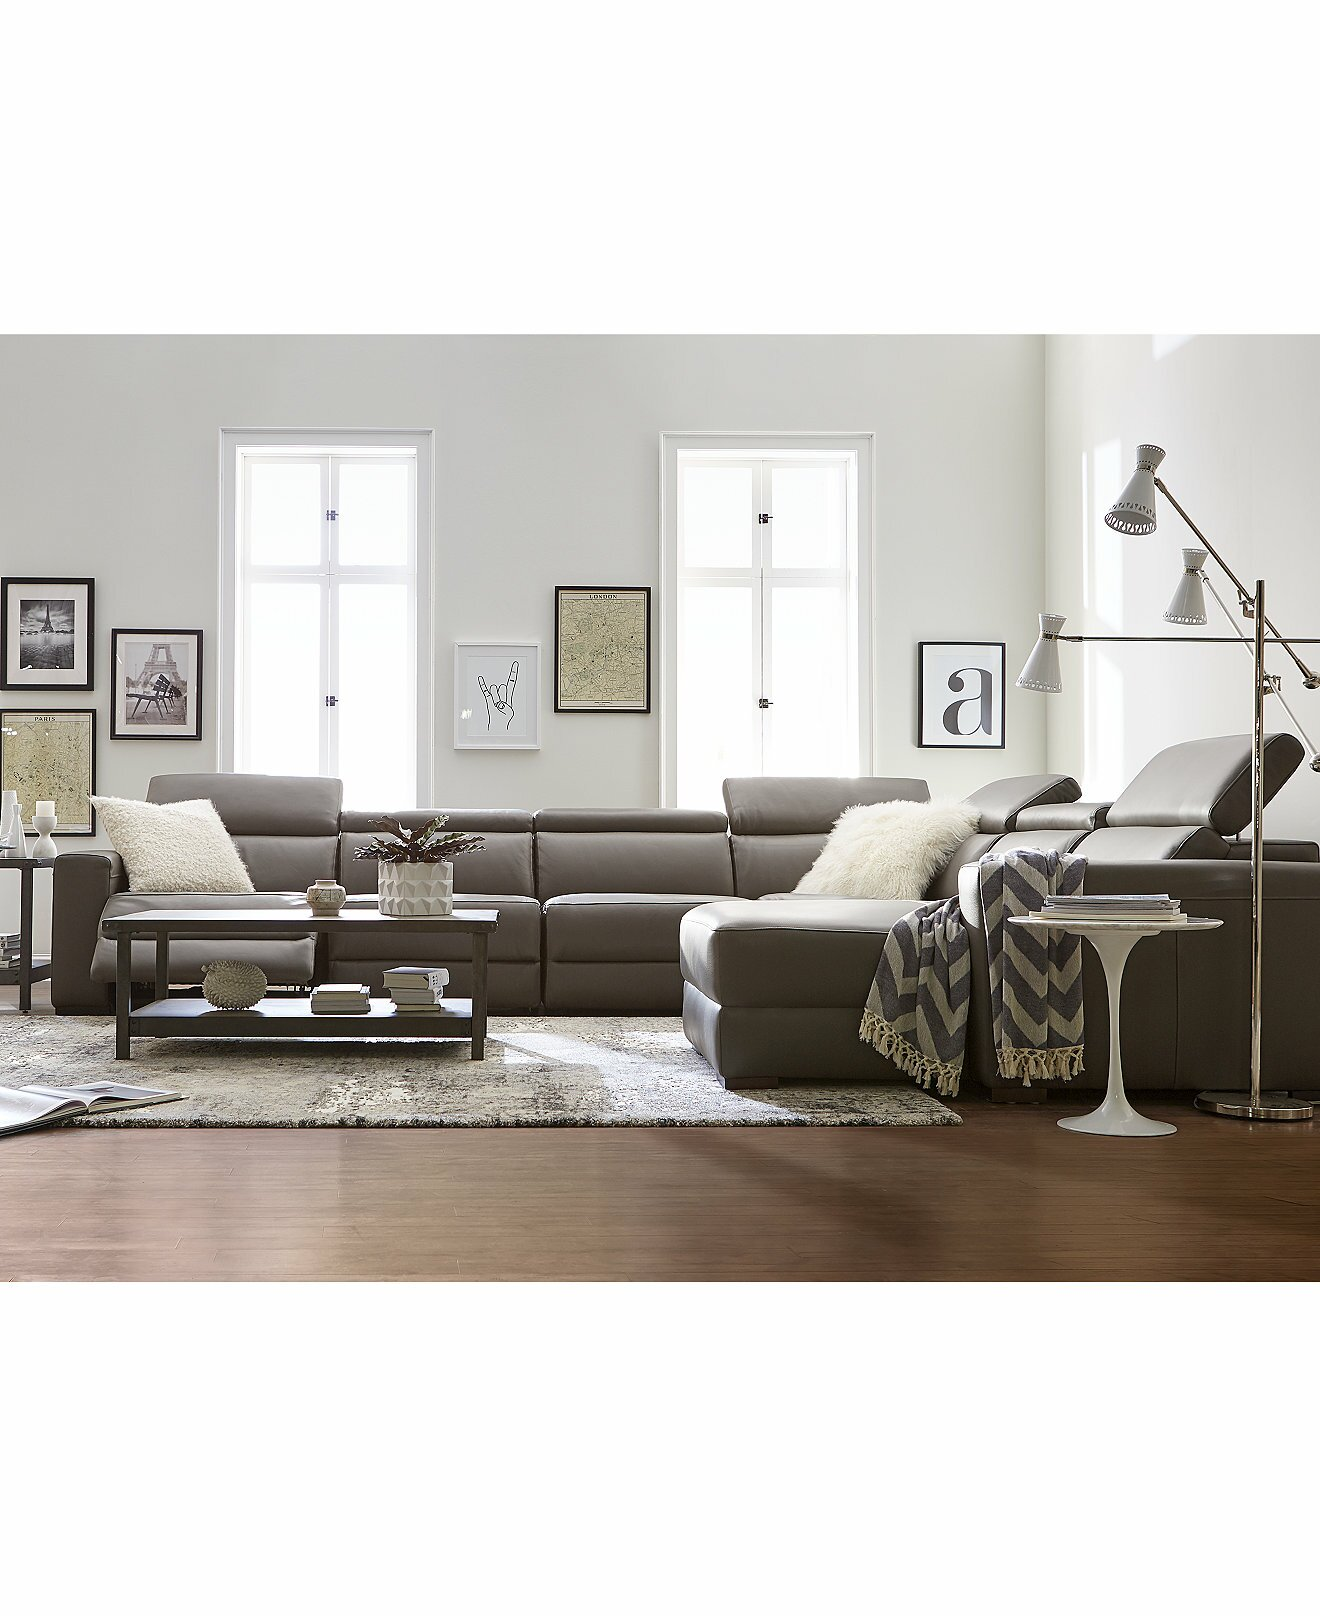 Macys Furnature | Macys Sectional Sofa | Macy Furniture Store